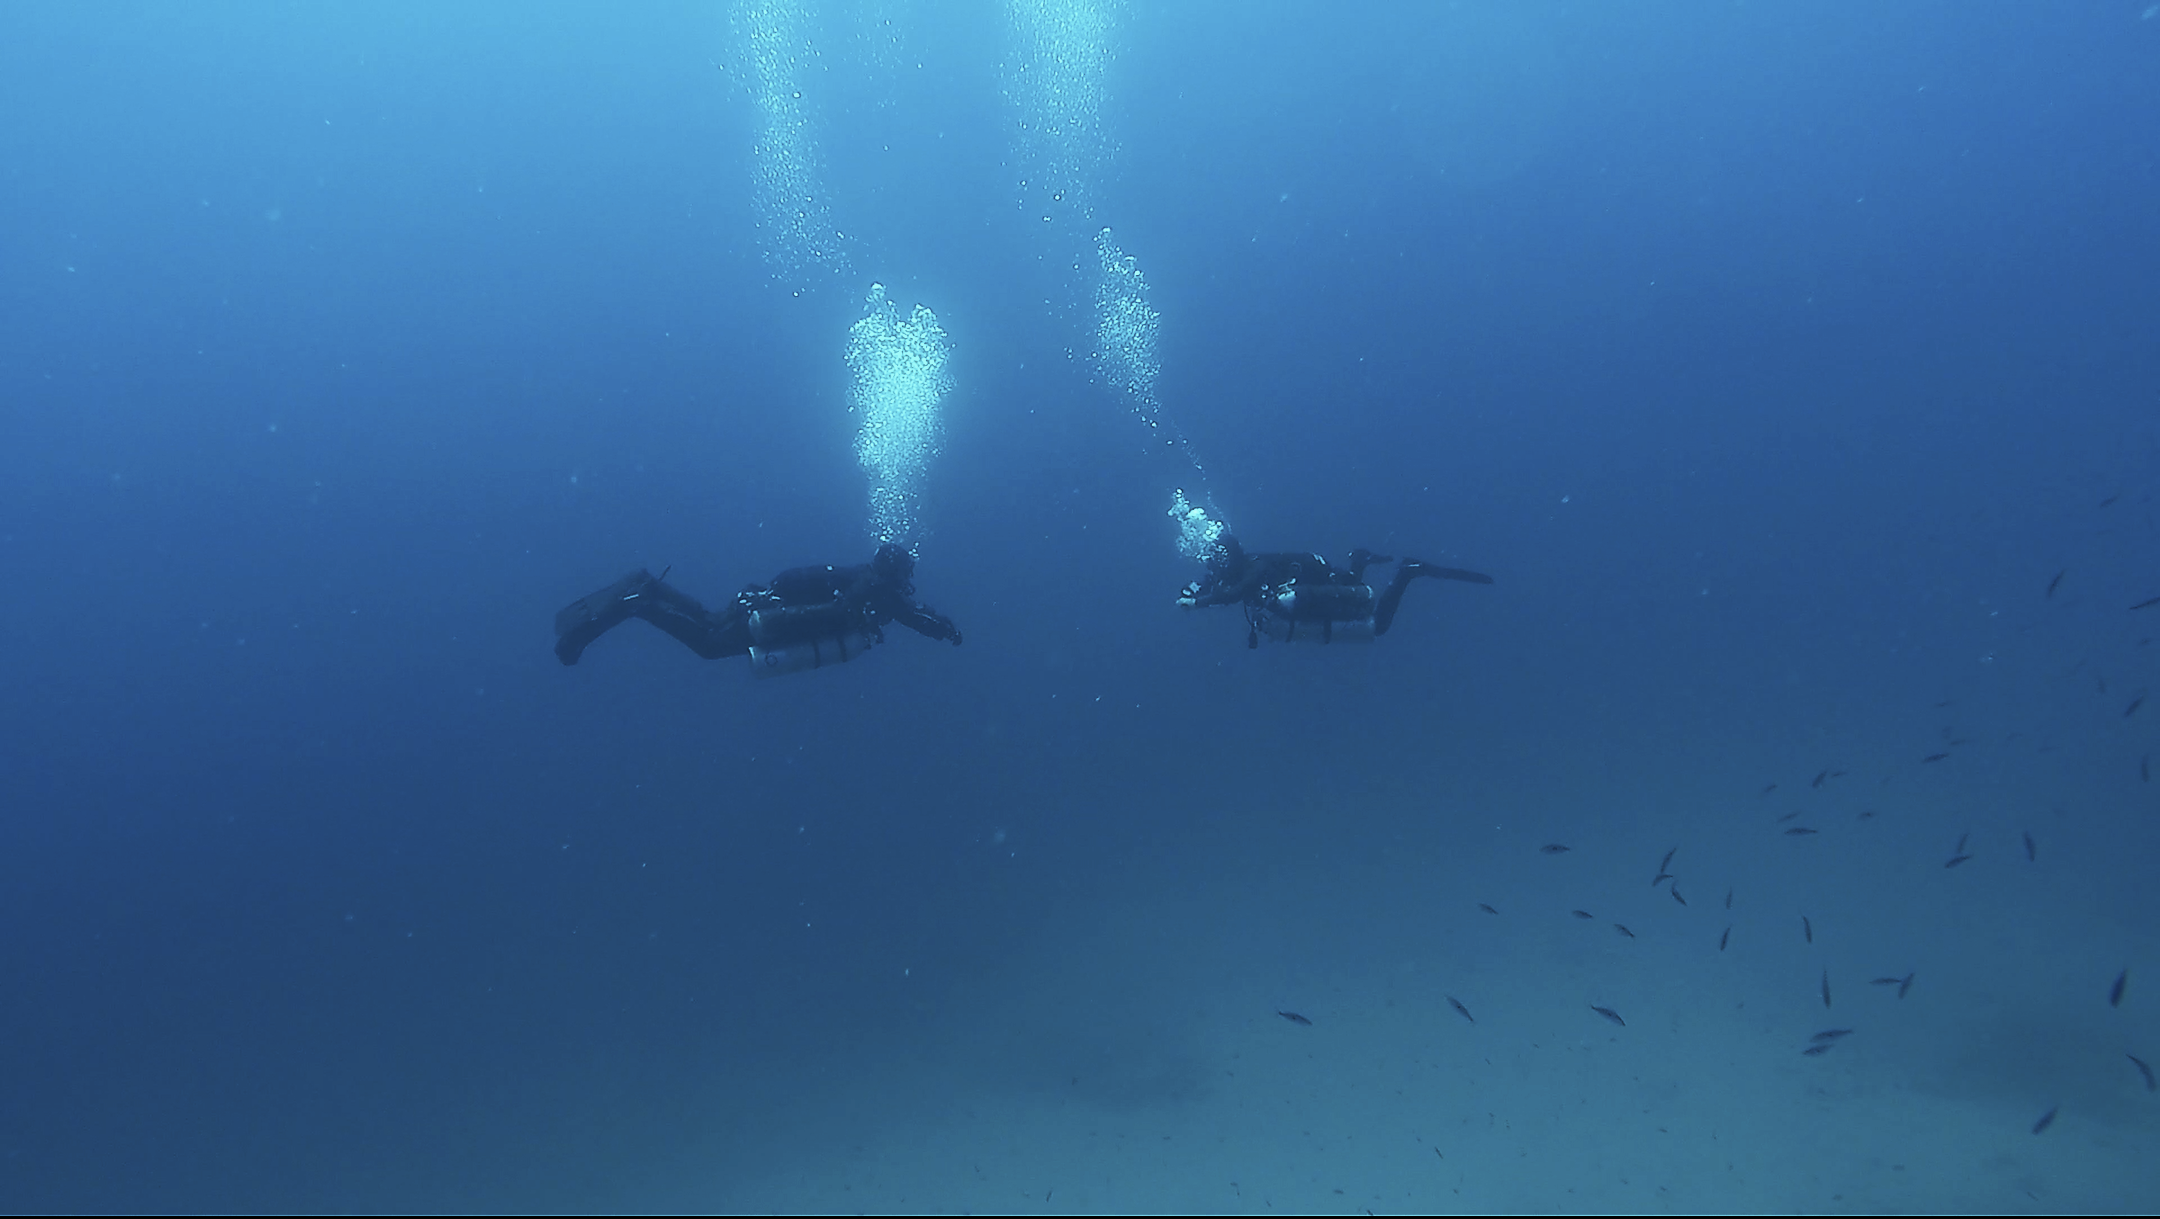 Dive Team Completing a Blue Water Decompression Ascent